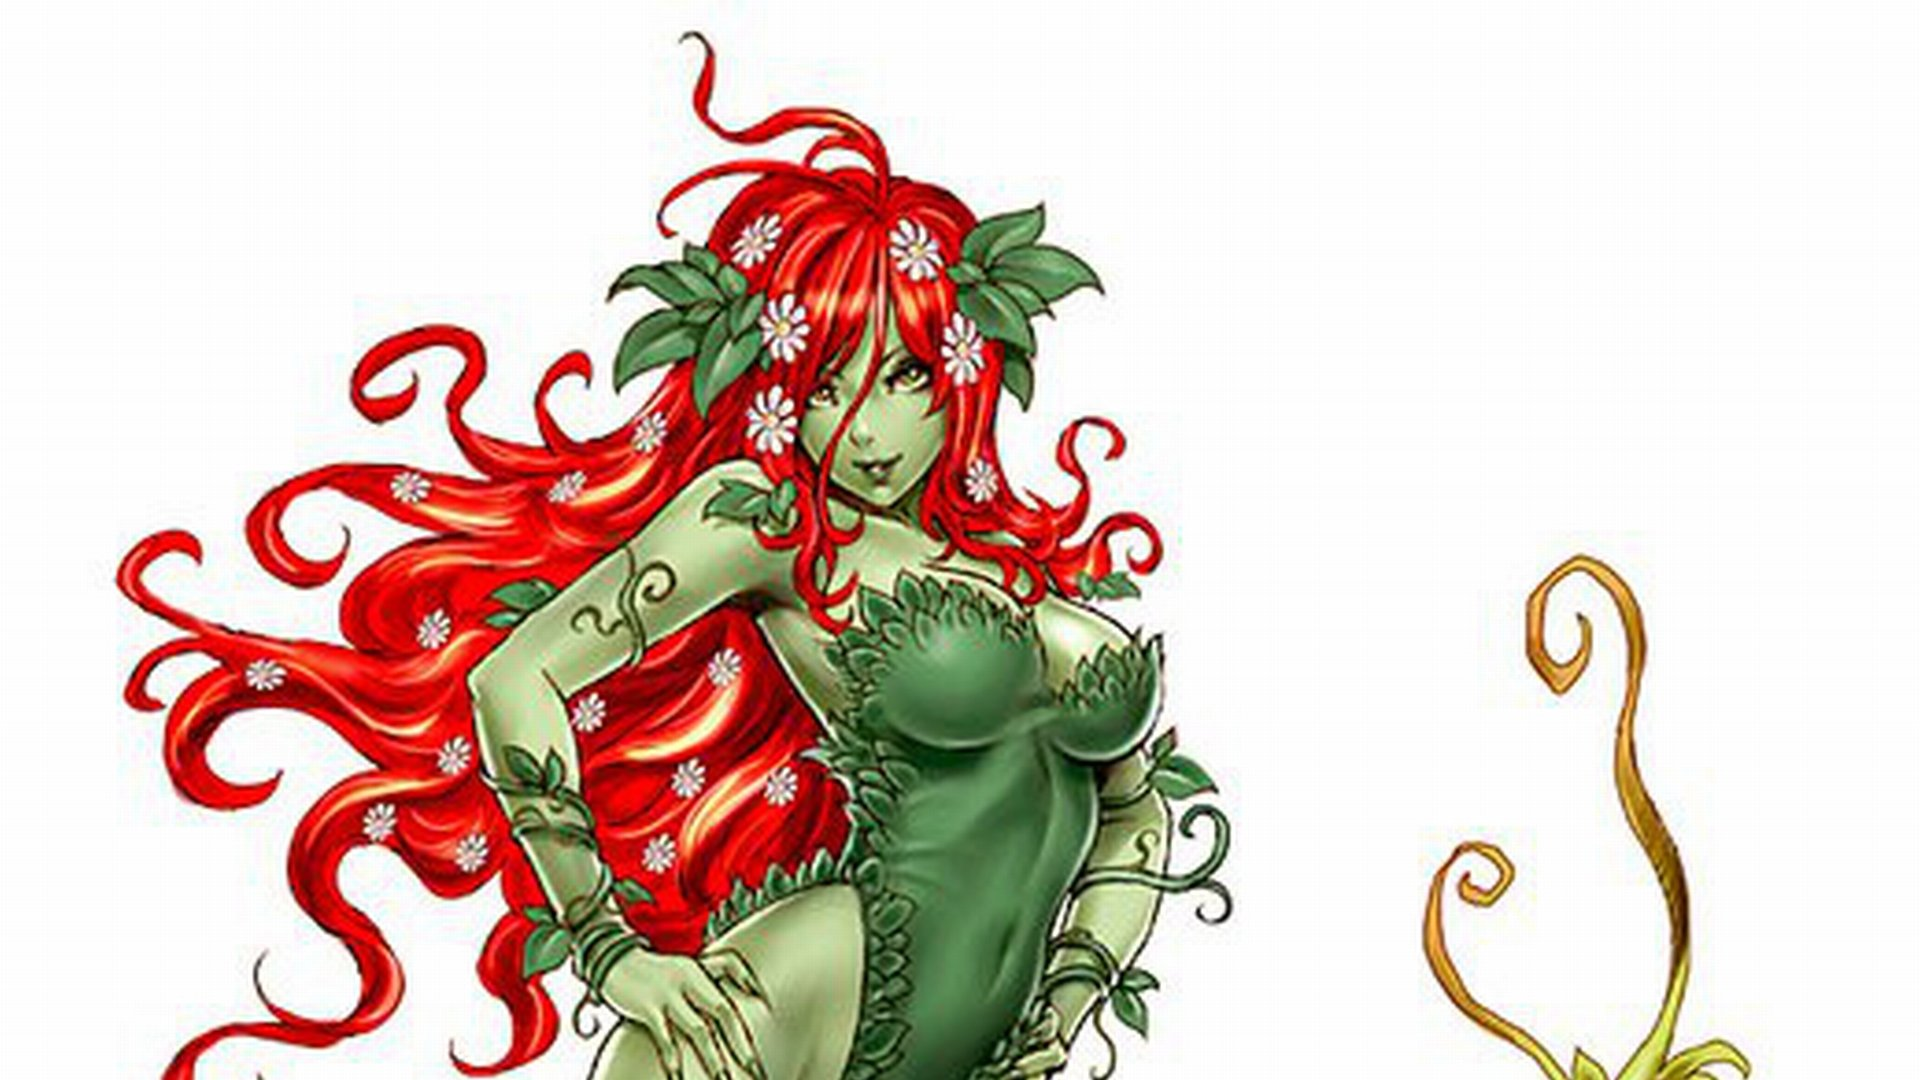 High resolution Poison Ivy full hd wallpaper ID:430634 for desktop